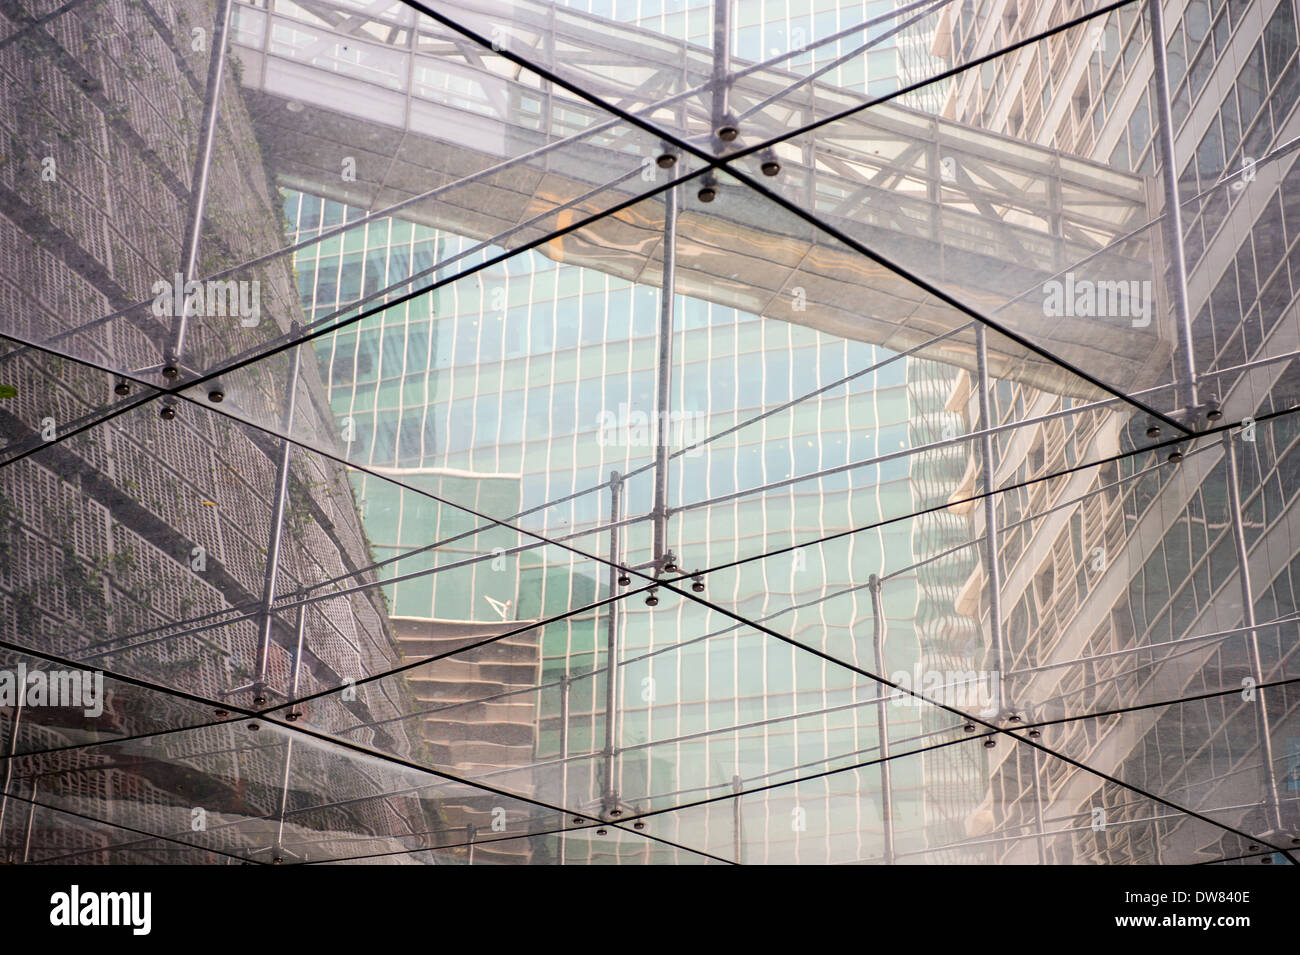 Glass and steel construction in the Singapore financial district. - Stock Image